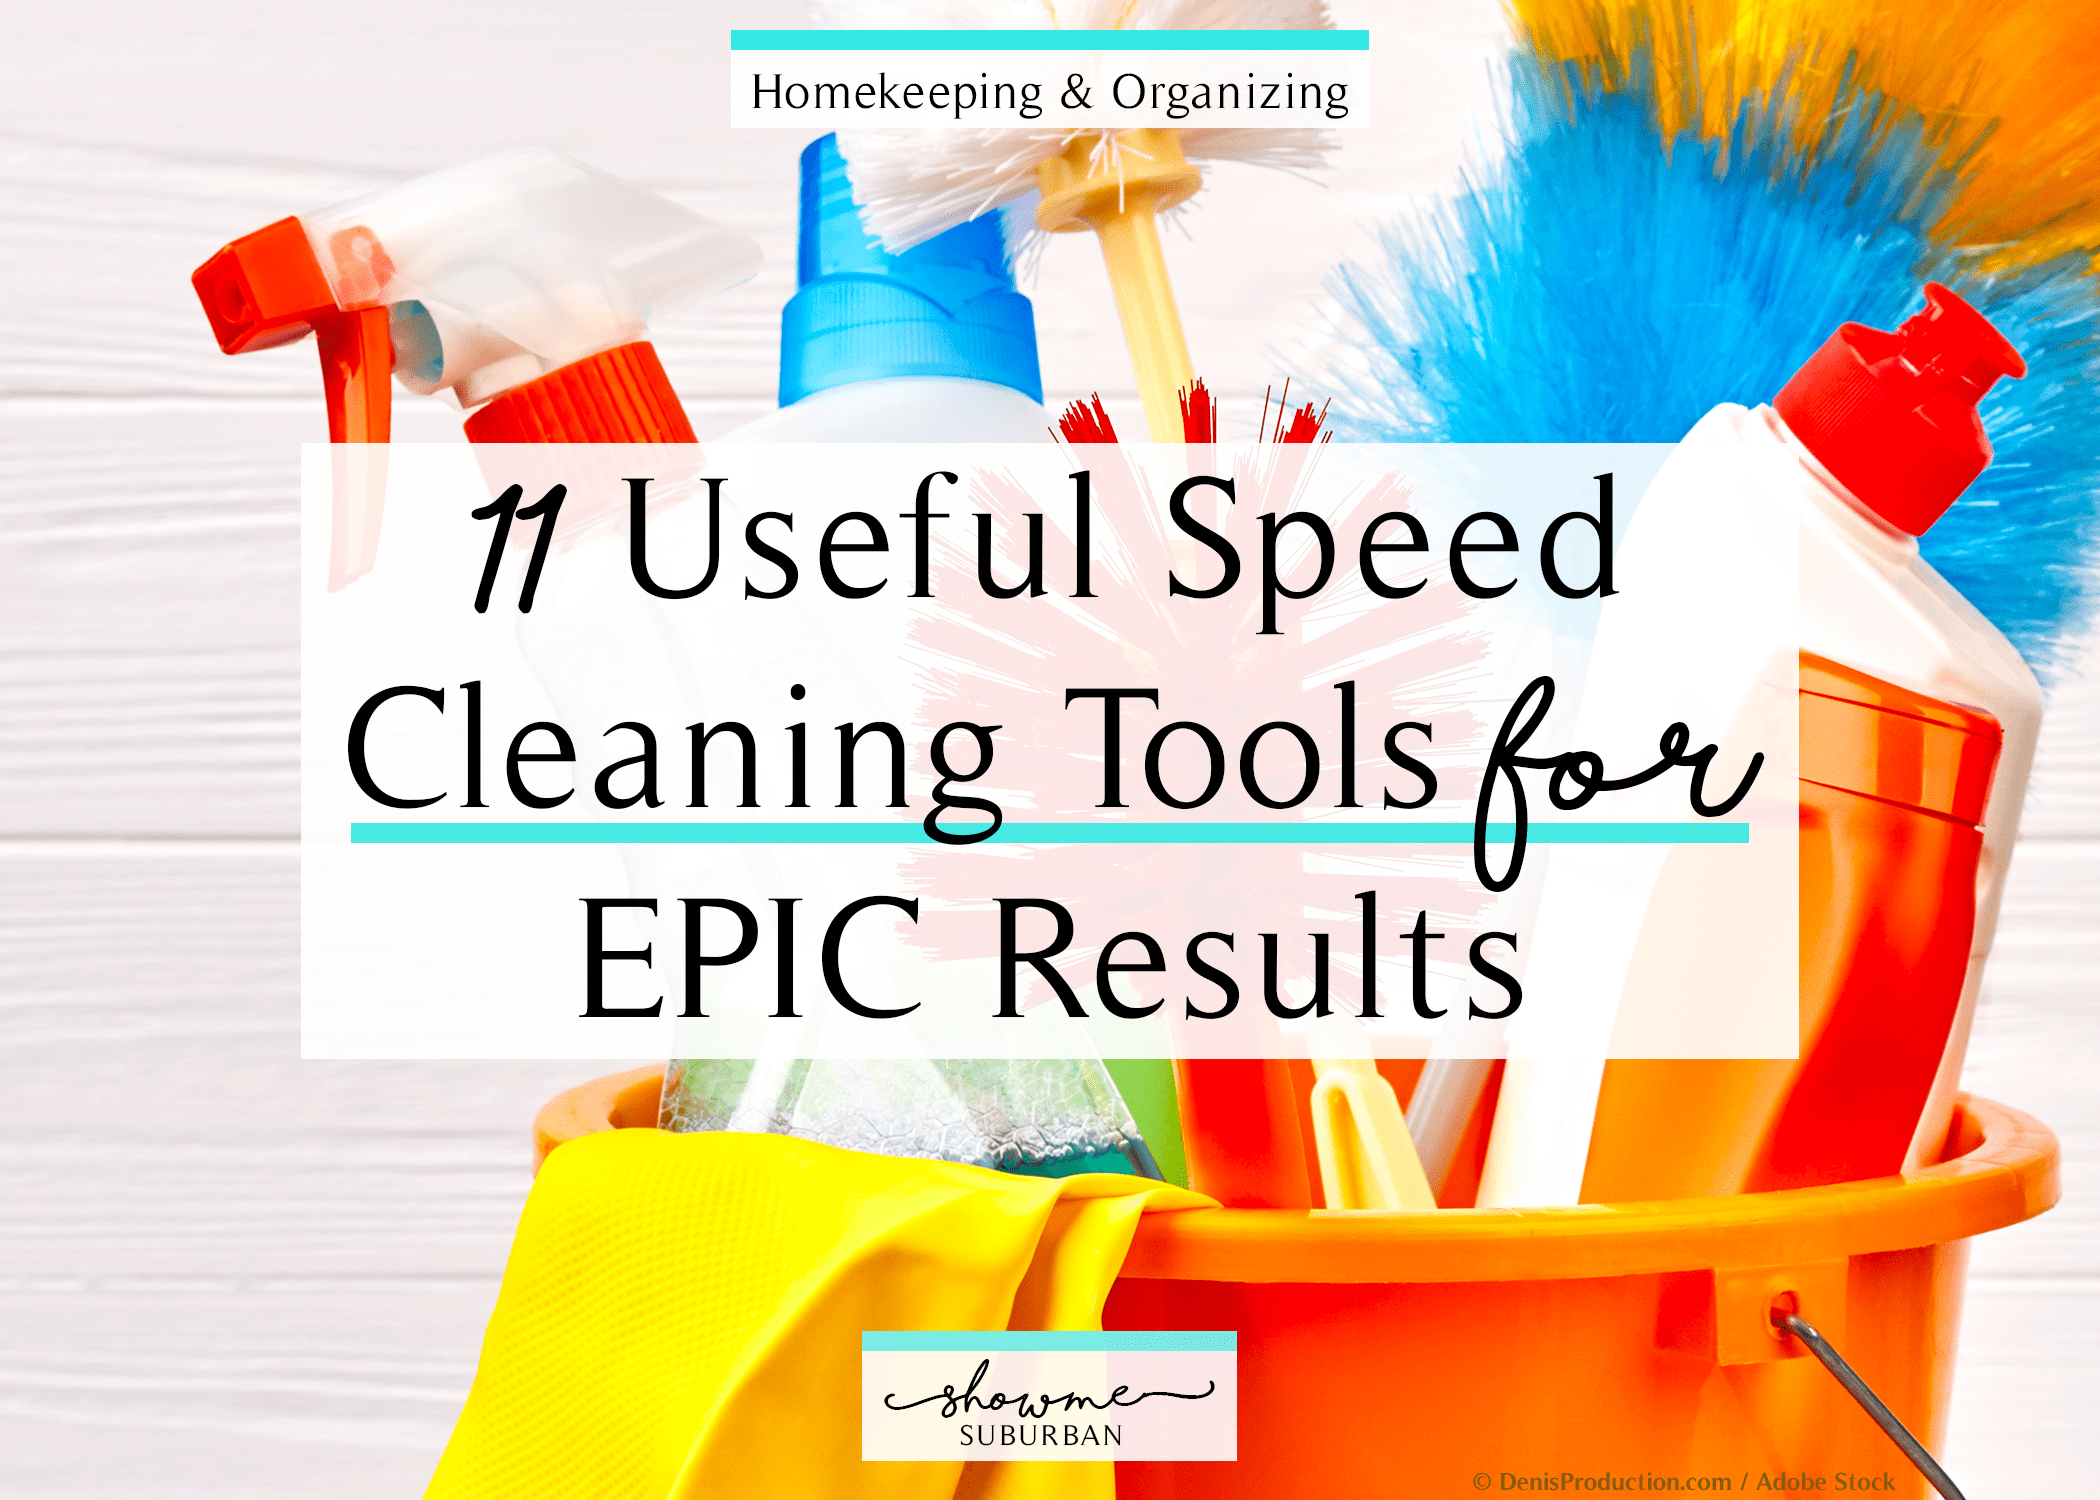 11 Useful Sd Cleaning Tools For Epic Results When You Need To Clean Your House Fast